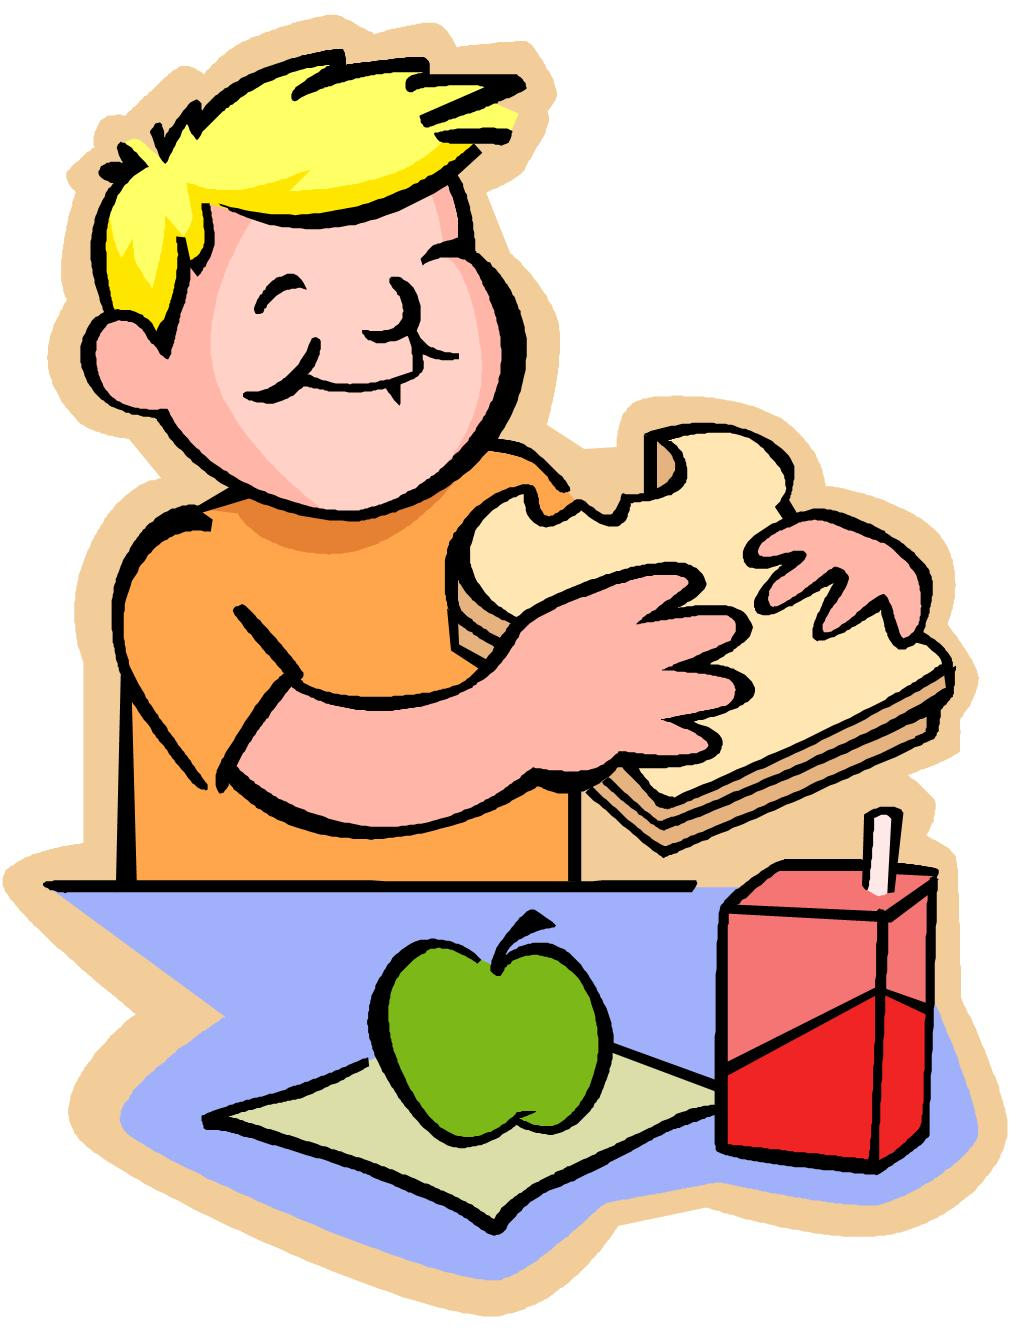 Lunch clipart #8, Download drawings